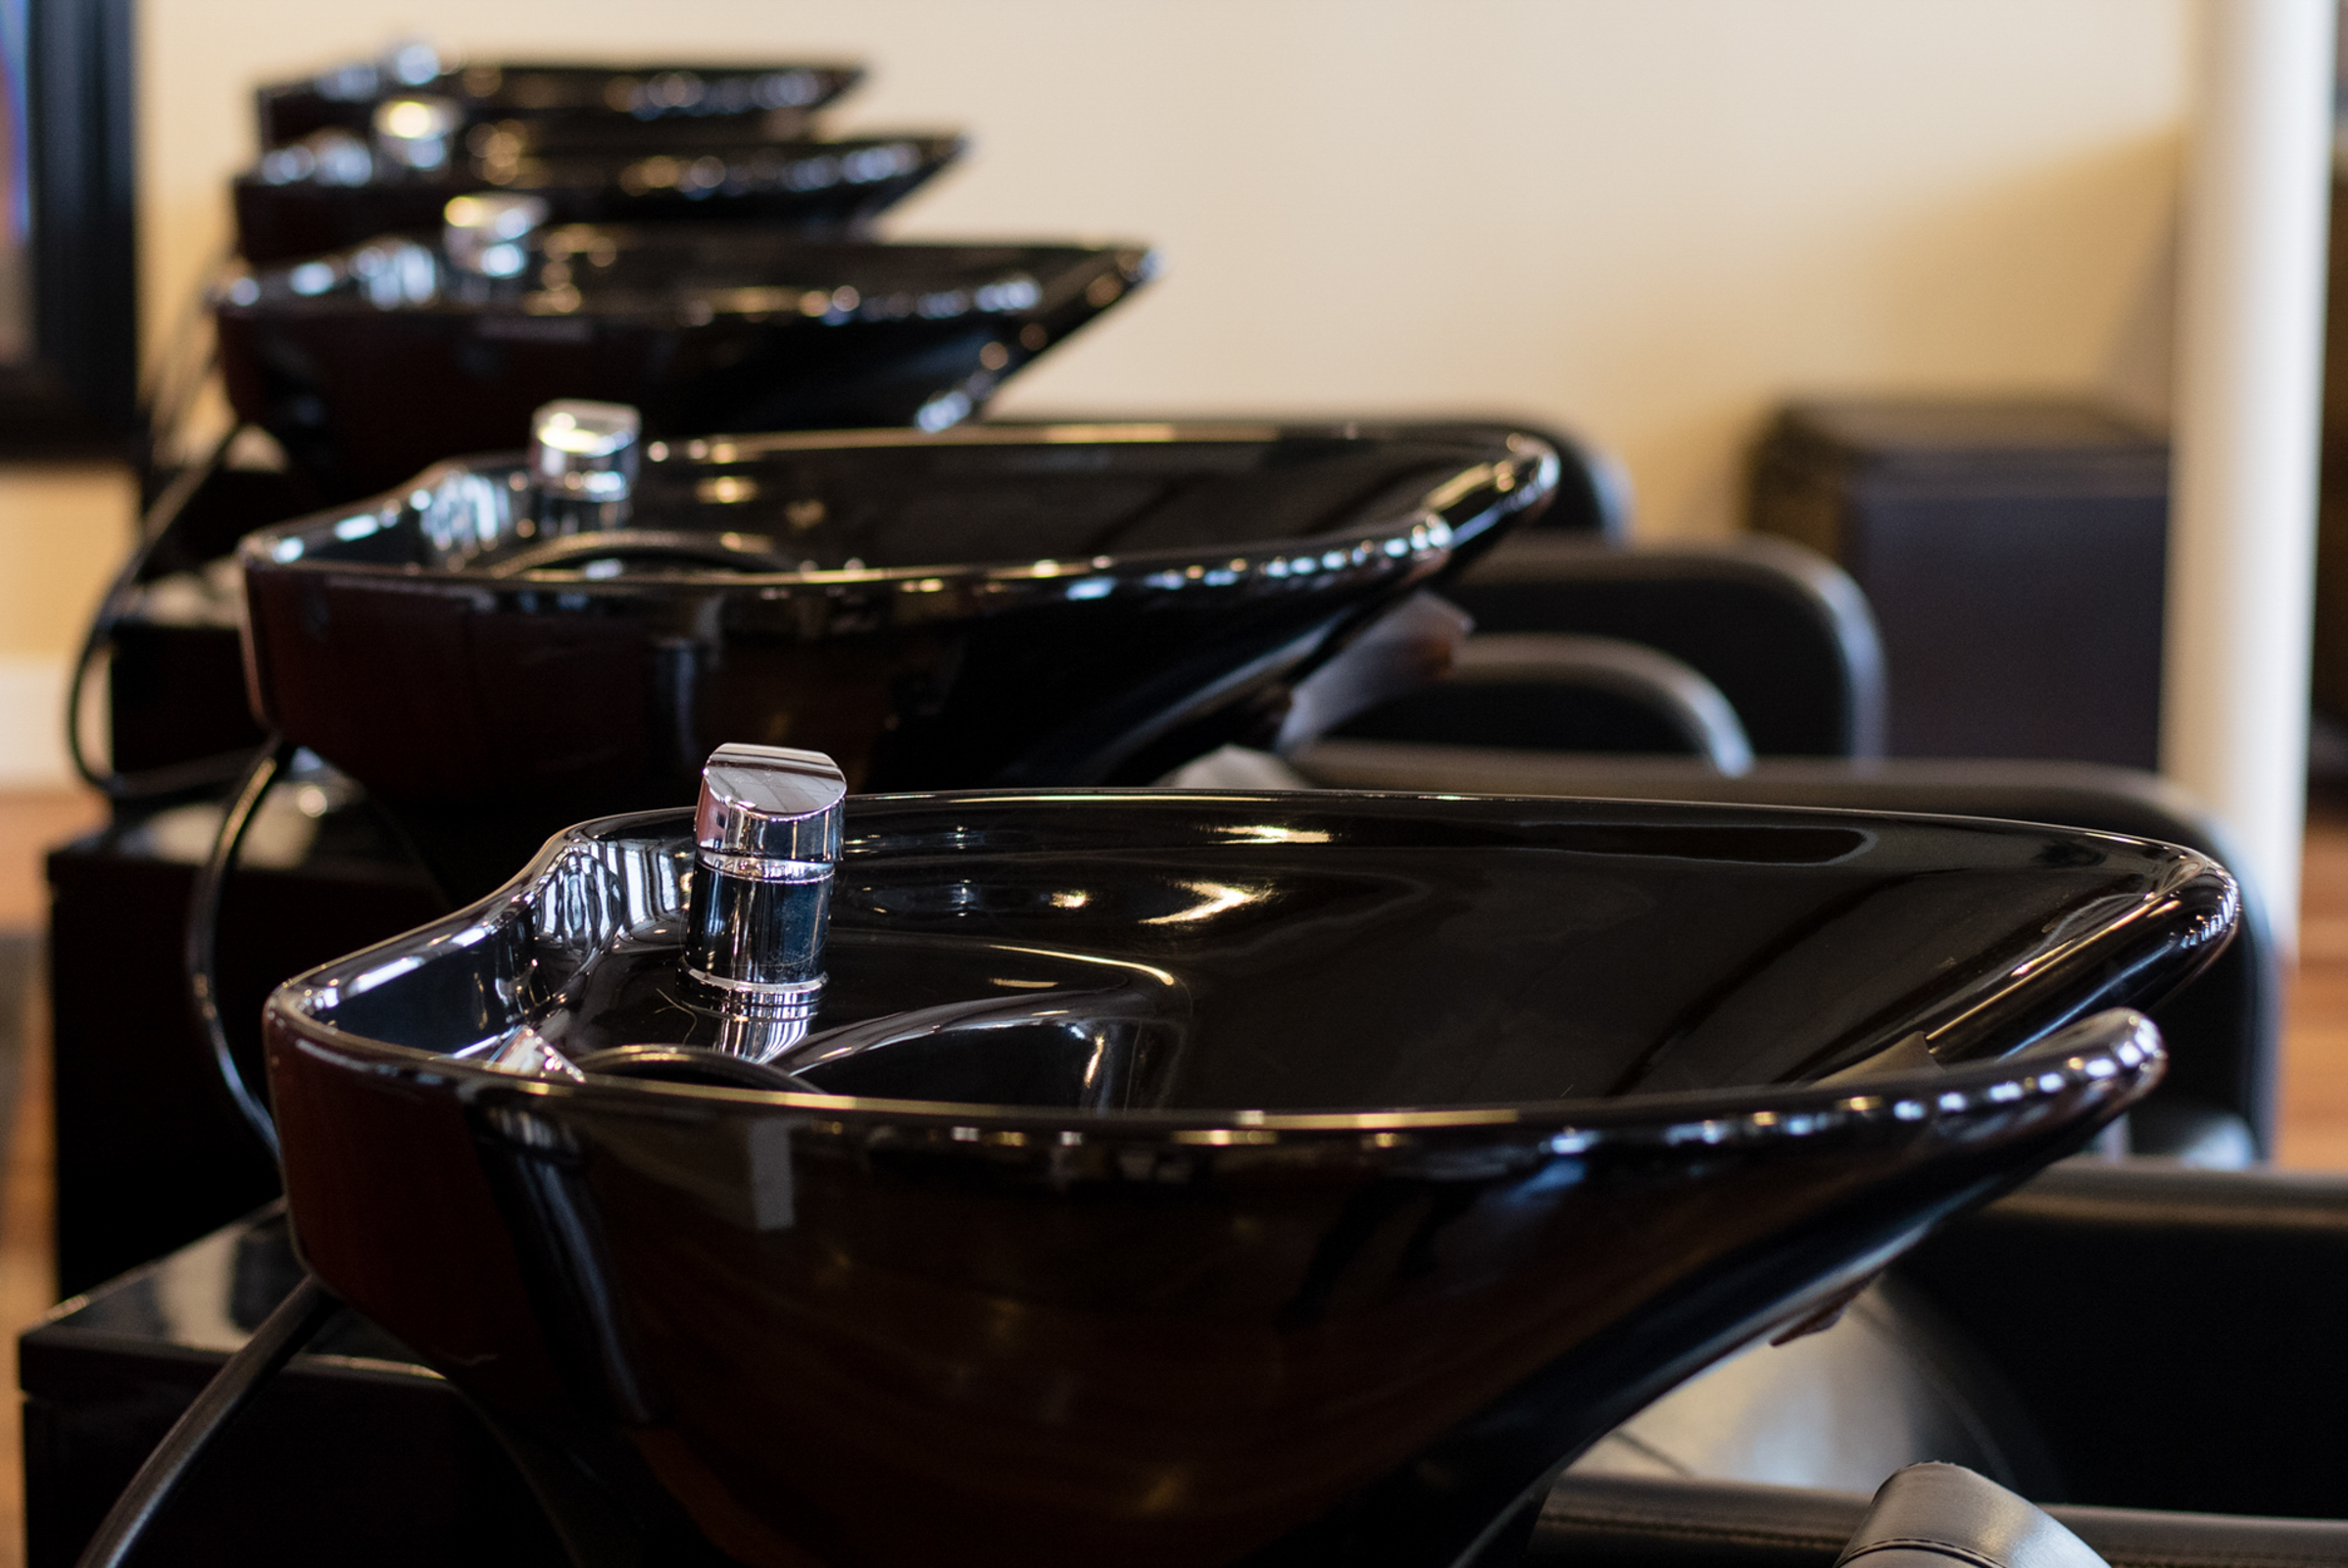 a row of salon sinks, photographed by jamie bannon photography.